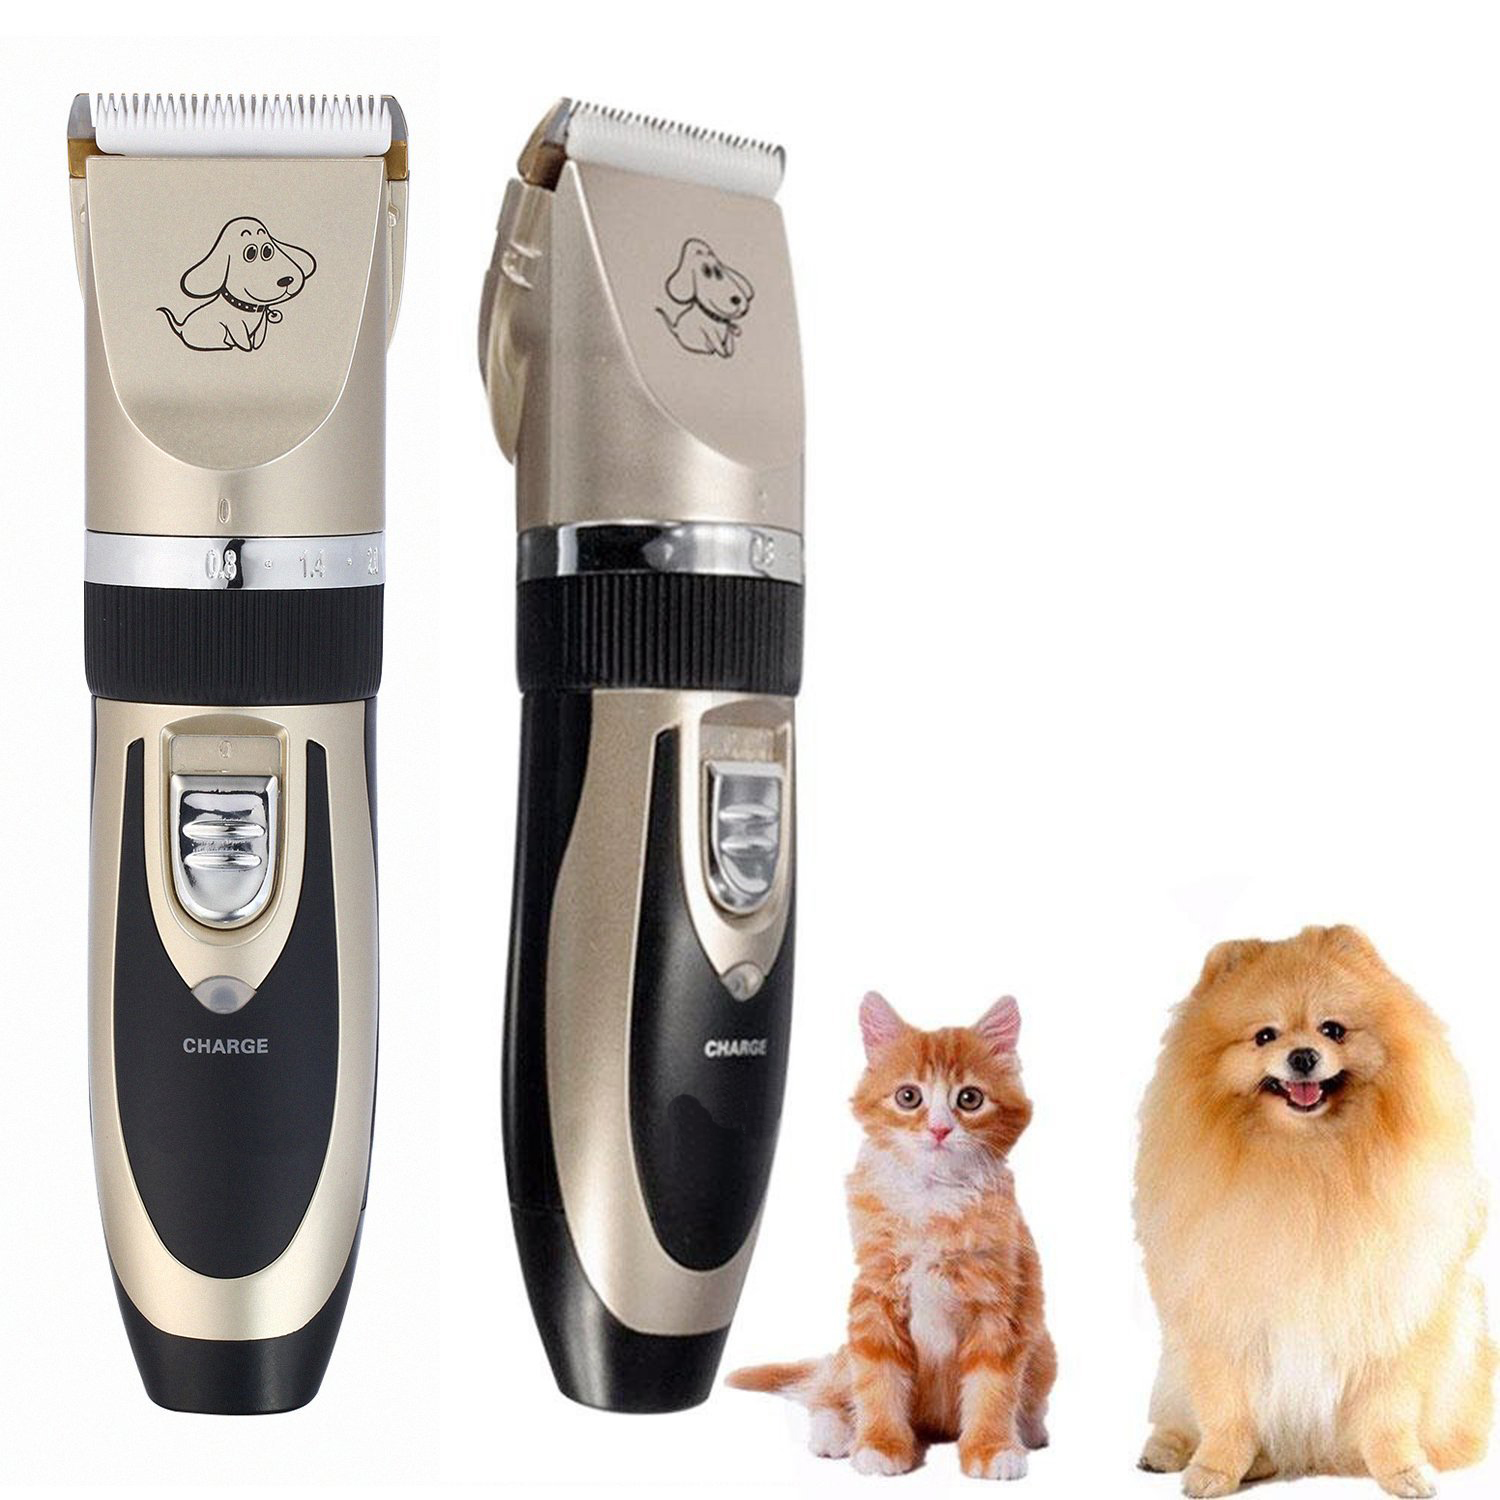 Dogs' and Cats' Rechargeable Electric Pet Shaver, Low Noise professional pet electric push cats and dogs rechargeable dog shaver teddy electric fader dog shaving knife